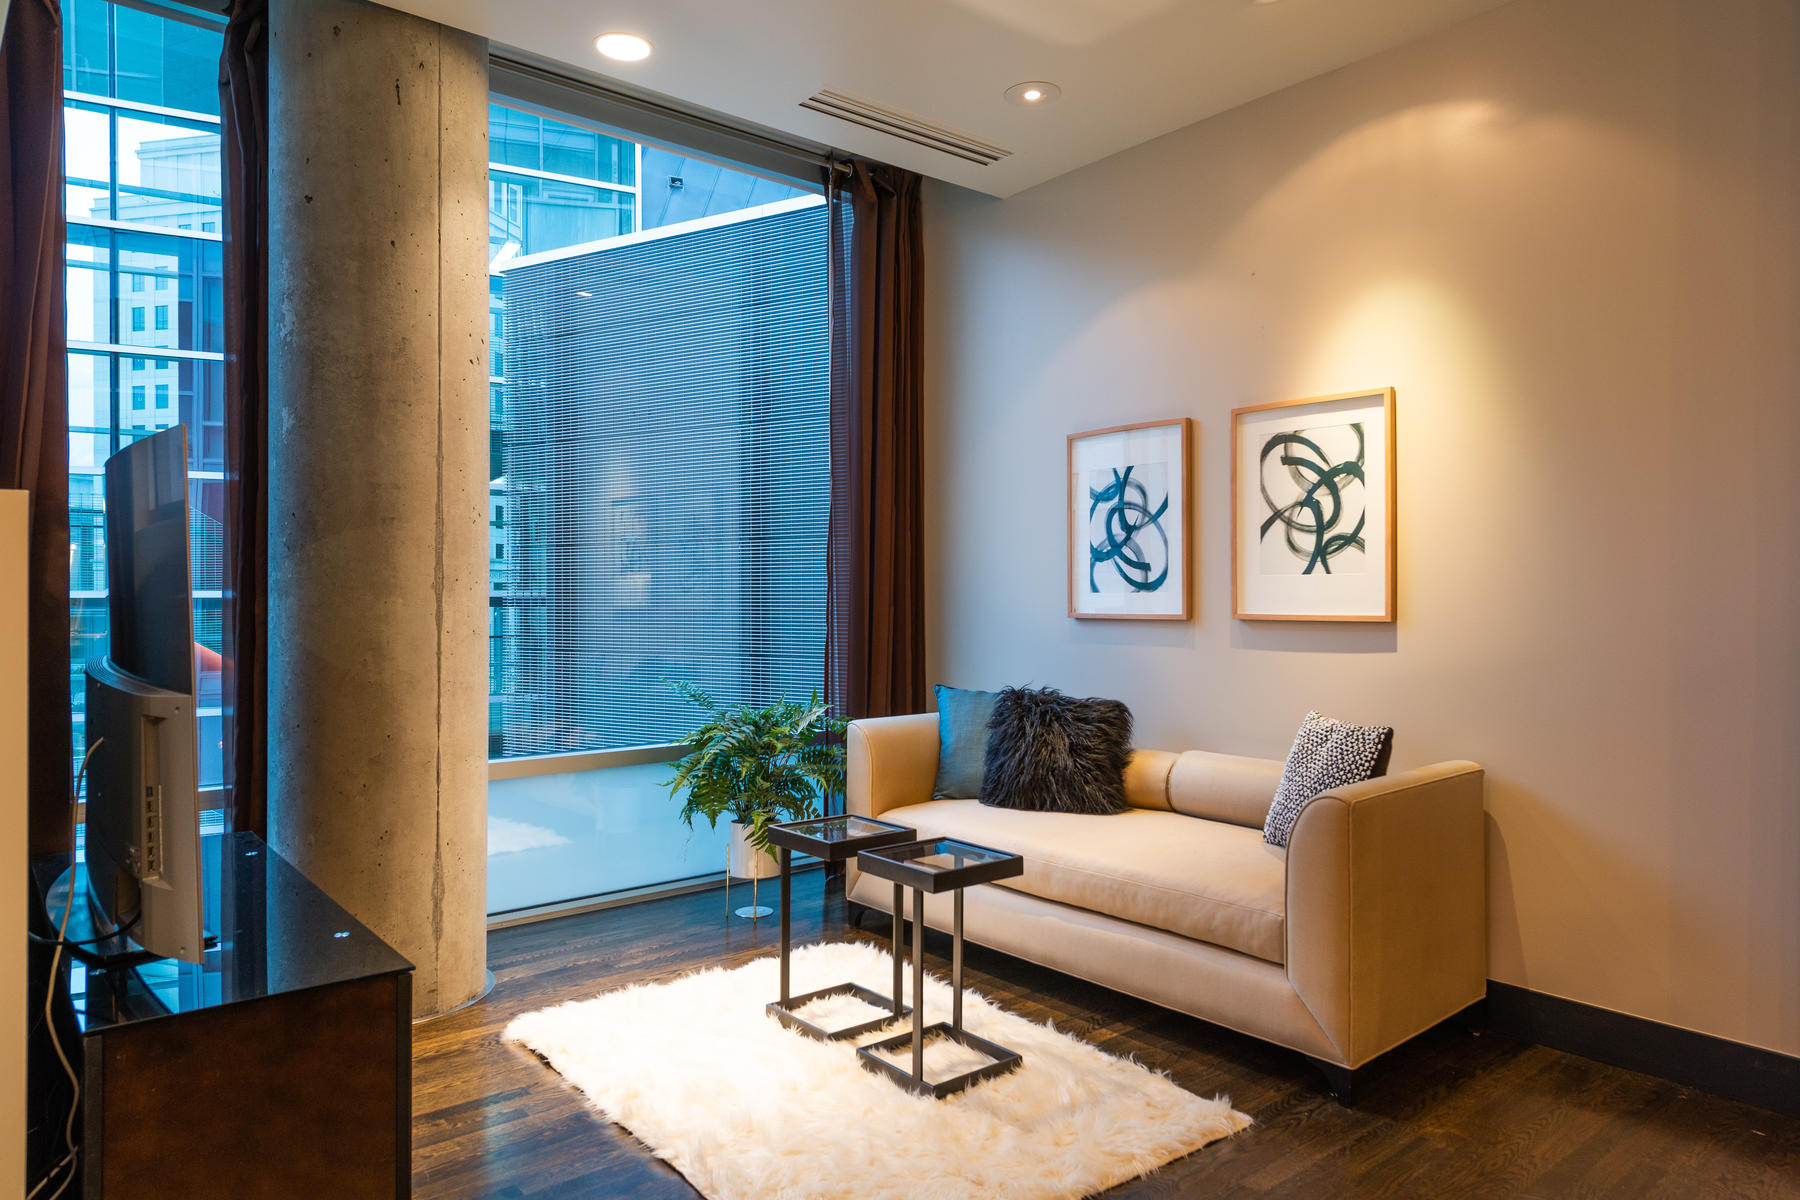 Additional photo for property listing at Stunningly Open, Light, Spacious & Private Corner Unit 1200 Acoma St #401 Denver, Colorado 80204 United States